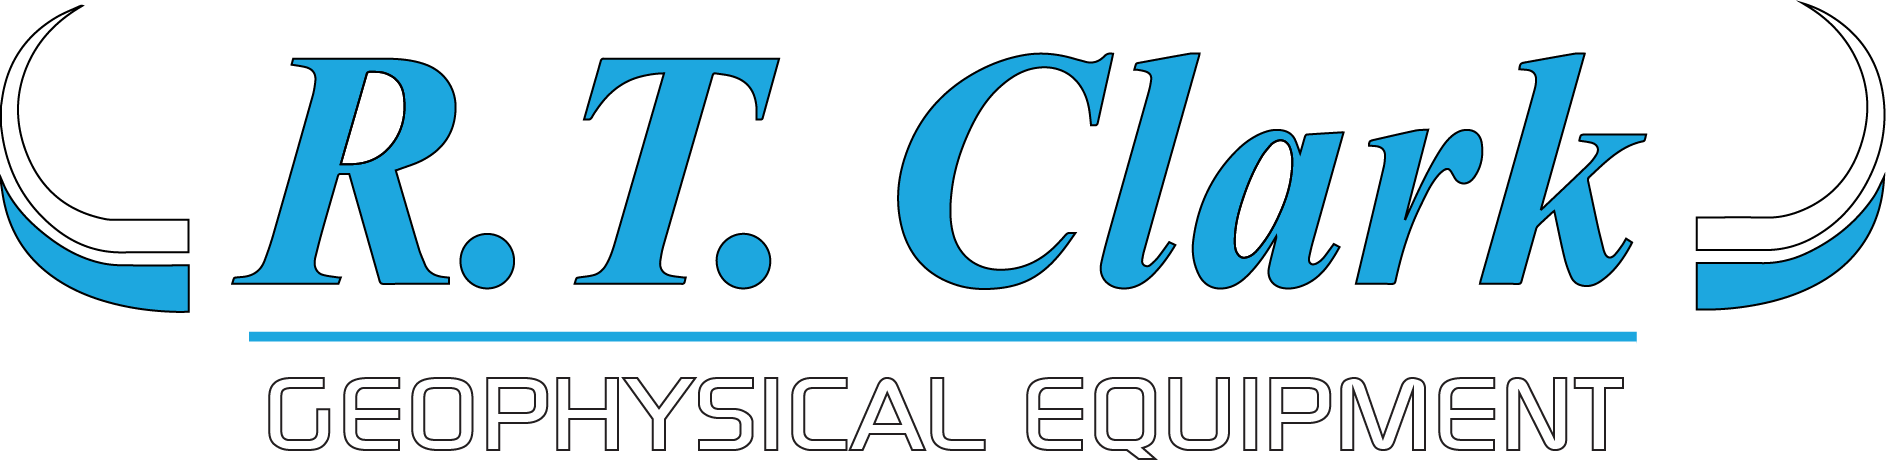 R.T.Clark Co., Inc. :: Geophysical Equipment